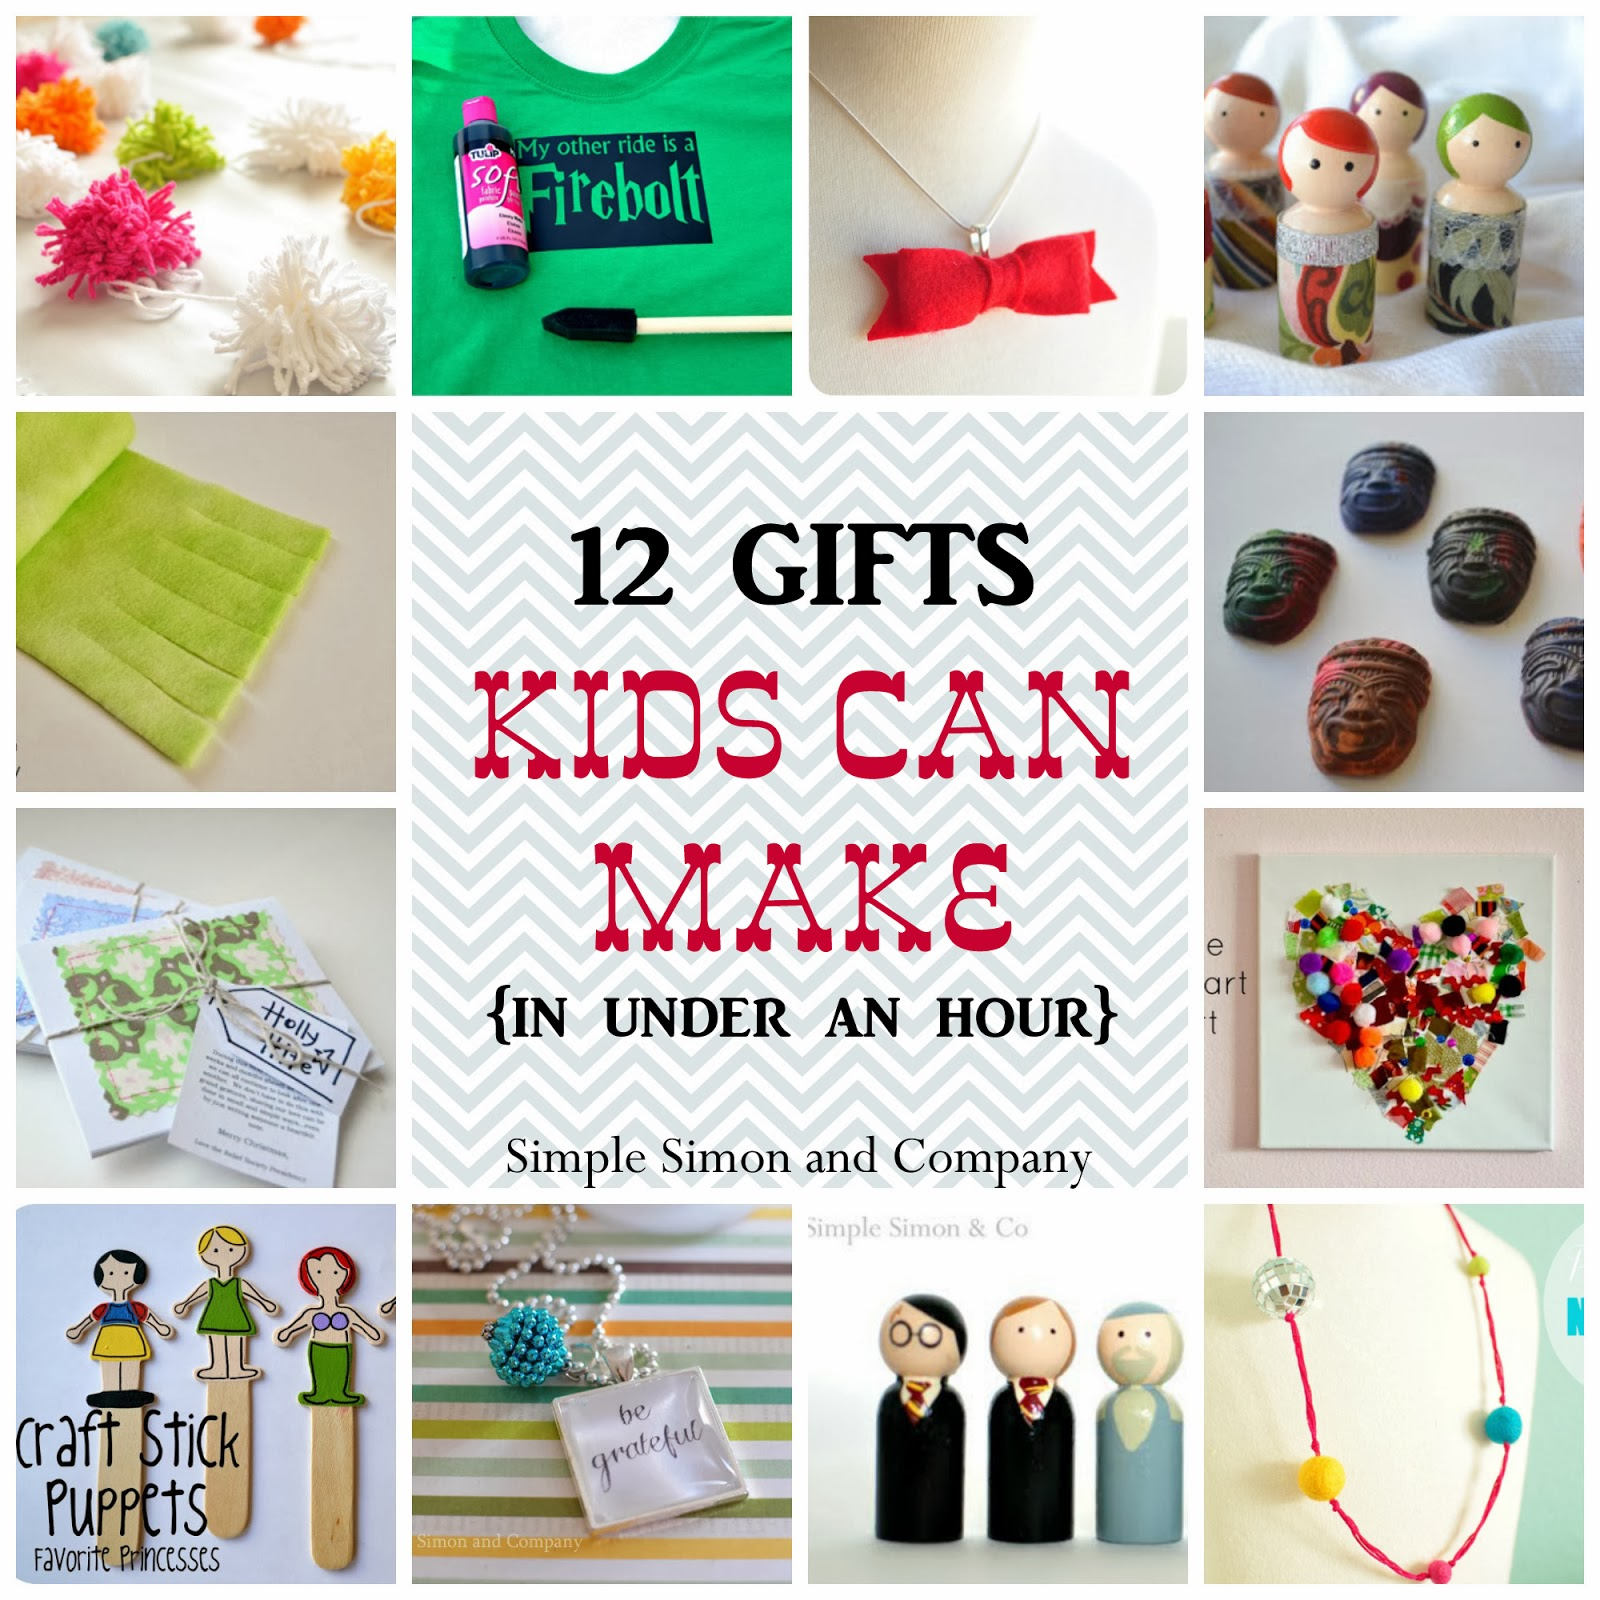 12 gifts kids can make